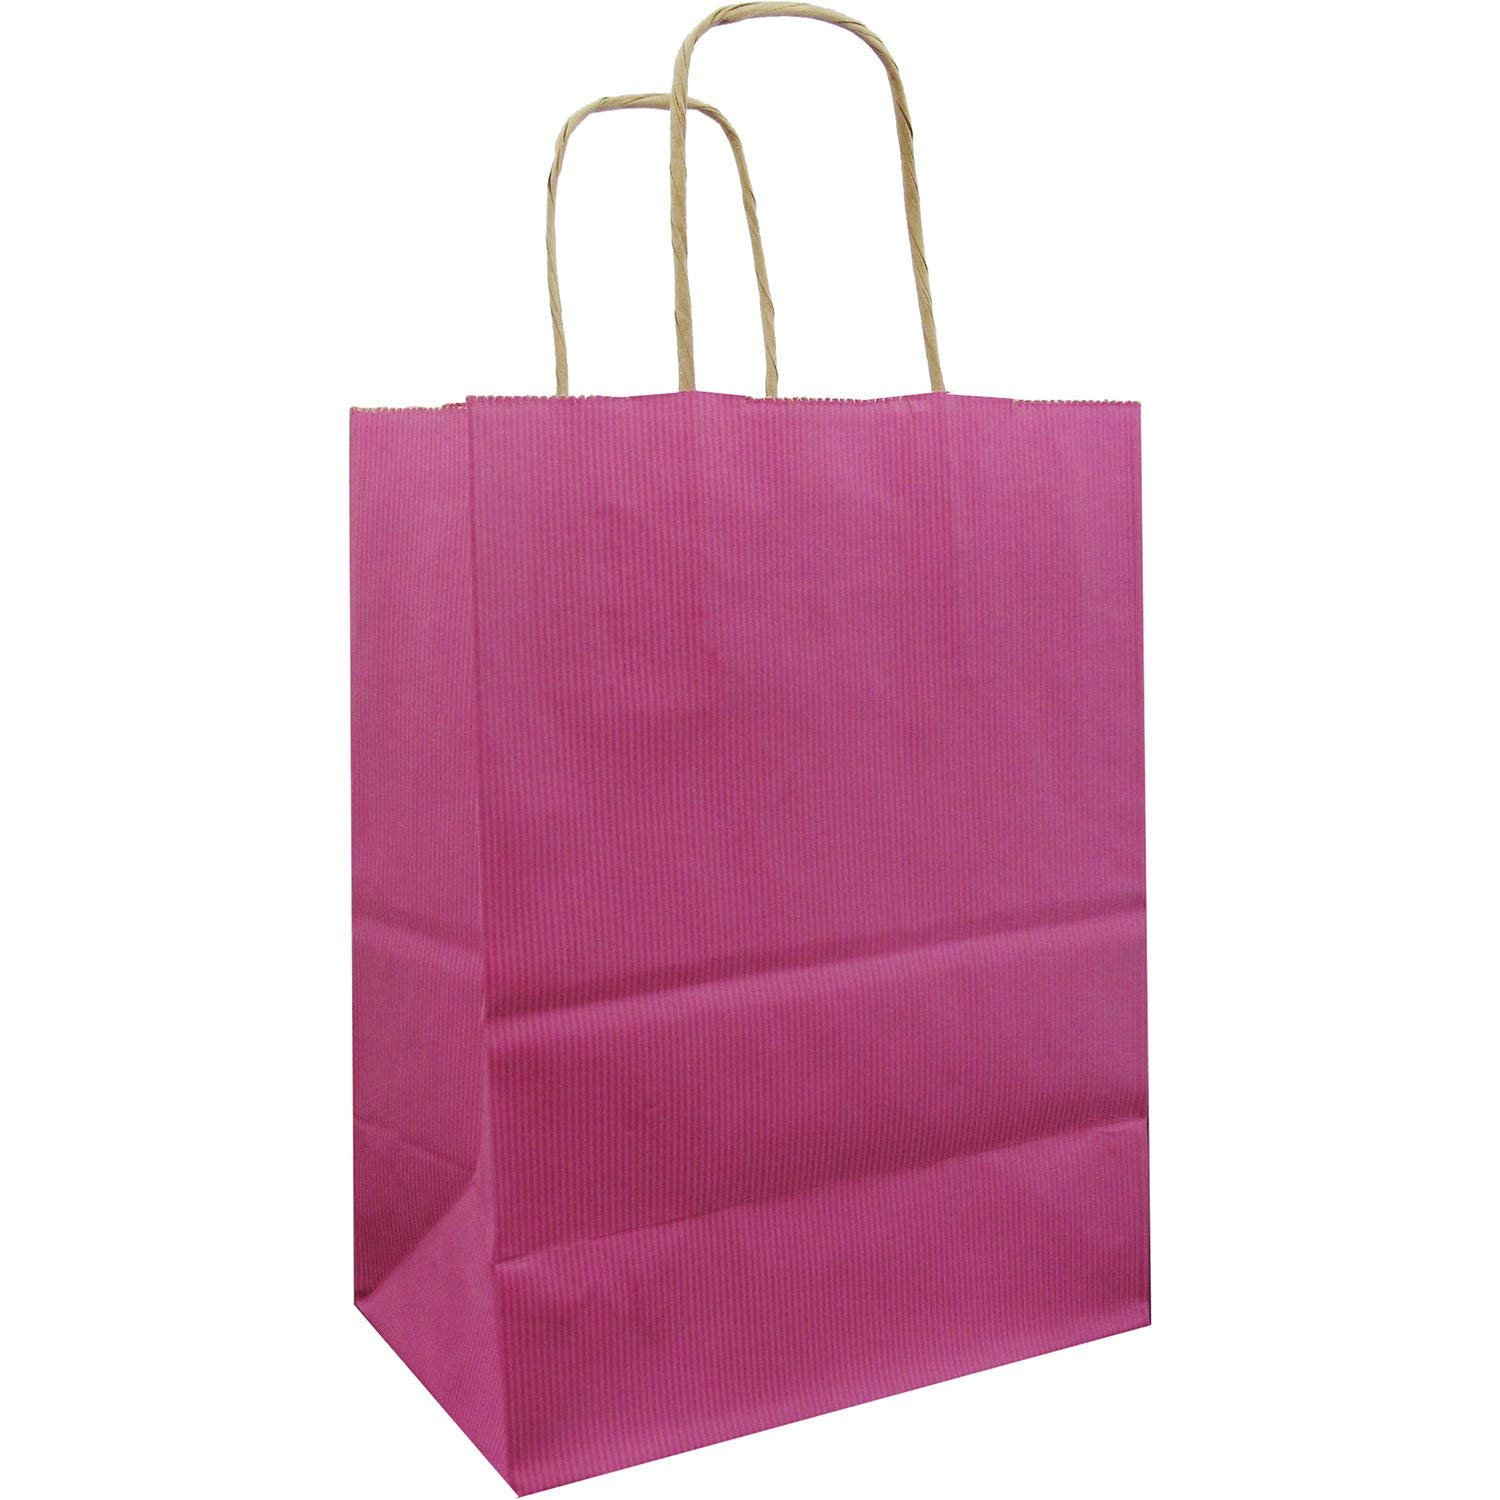 Primary image for Jillson & Roberts Medium Kraft Bags, Magenta 1 dozen (12 bags)